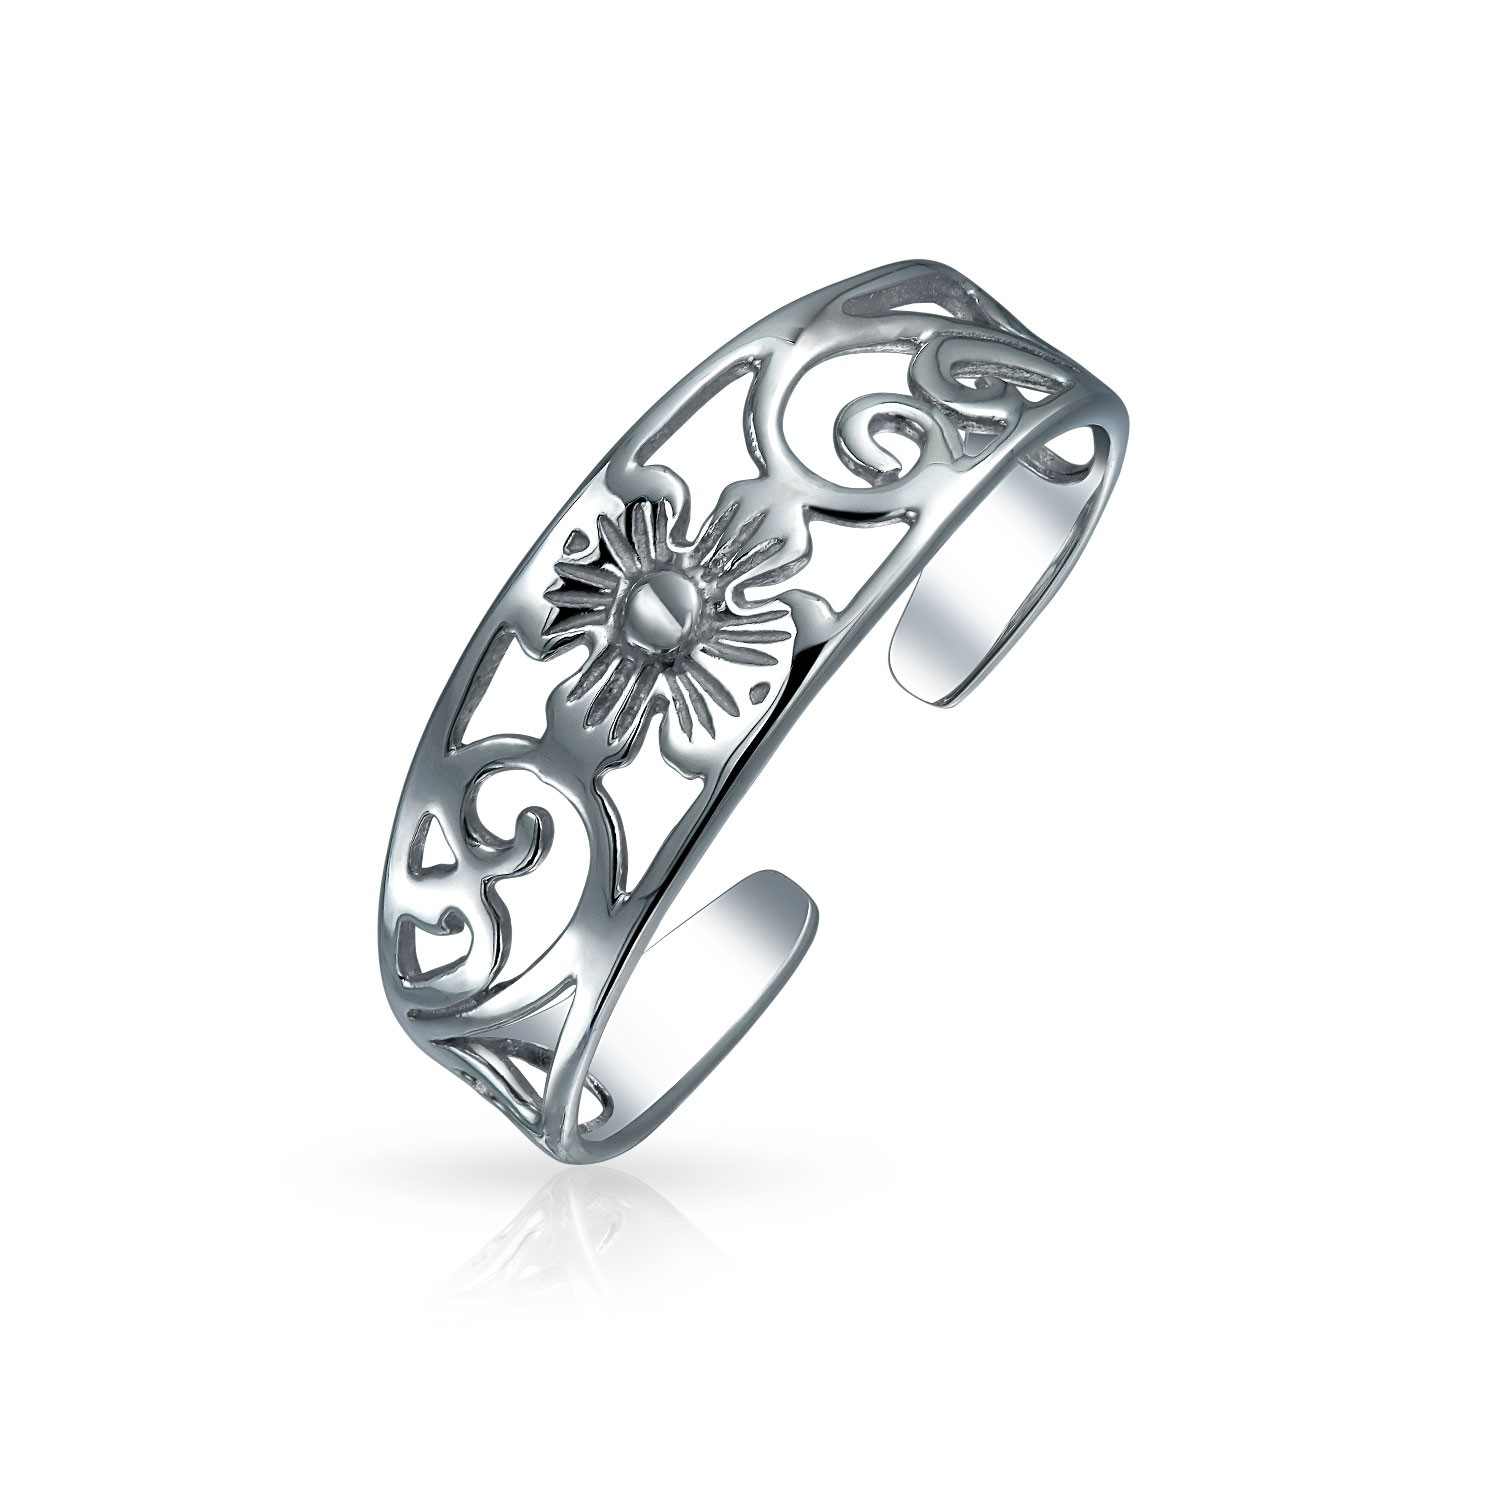 Adjustable Filigree Flower Toe Ring 925 Sterling Silver Midi Rings Intended For Latest Toe Rings With Diamonds (View 1 of 15)